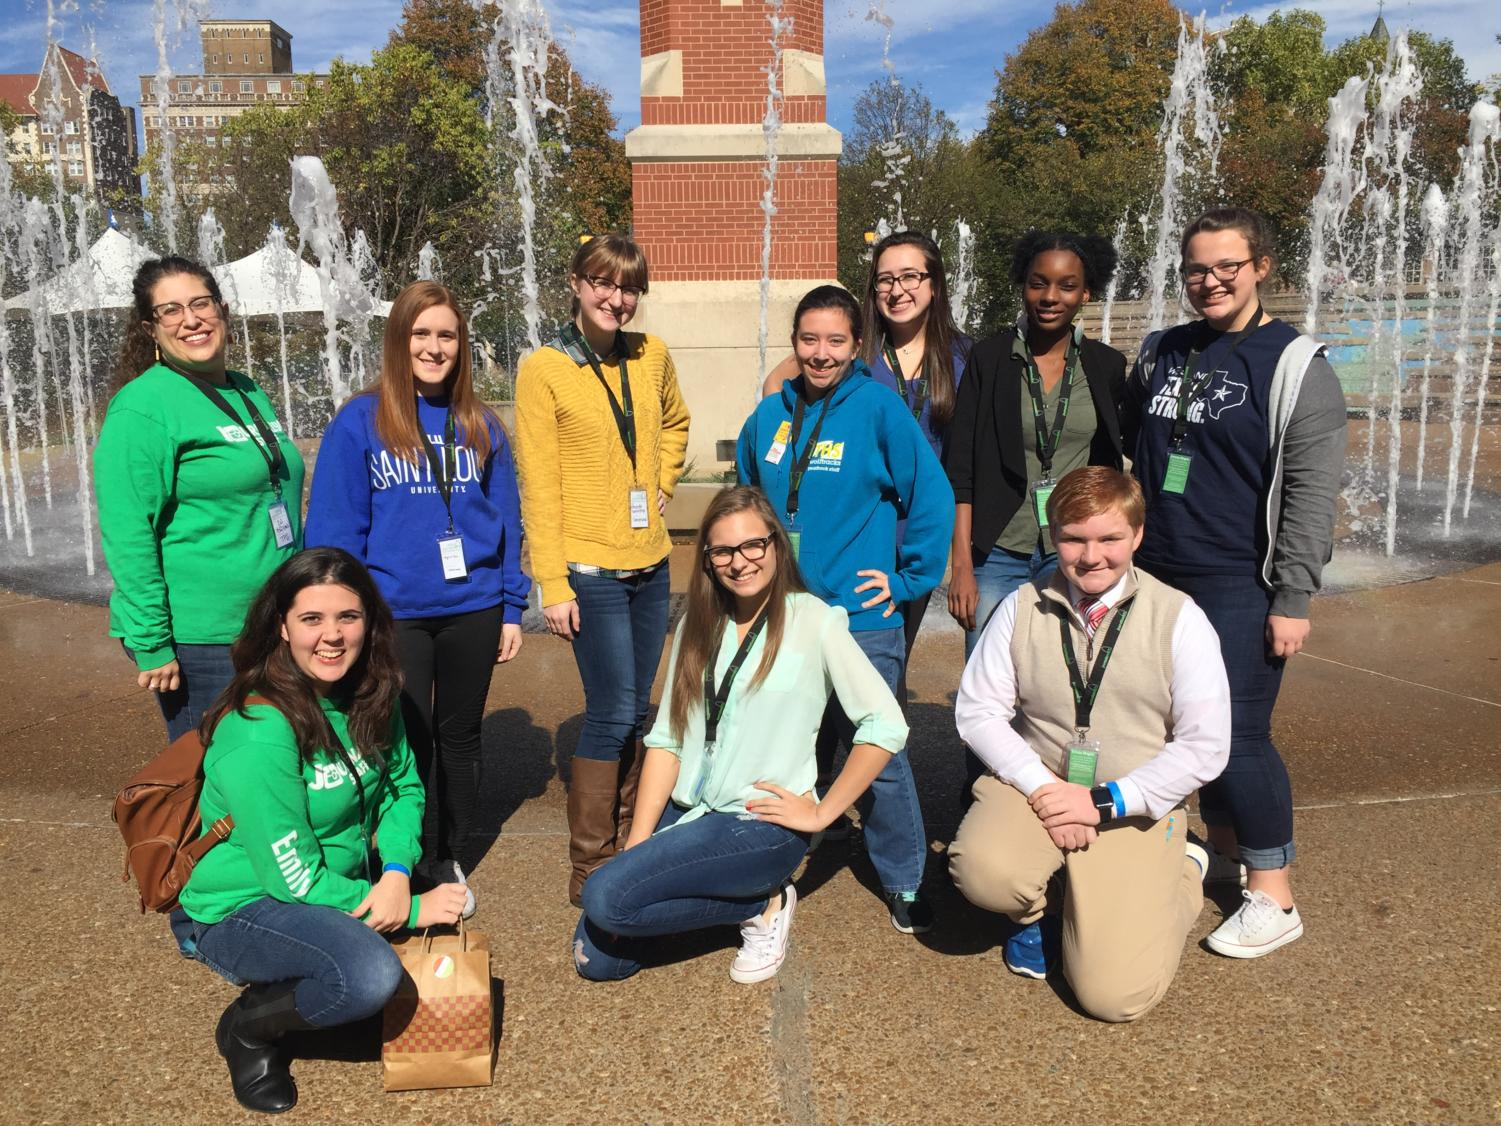 Members of the 2017-18 yearbook staff, as well as members of Intro to Journalism, pose at the JournalismSTL conference, held at St. Louis University.